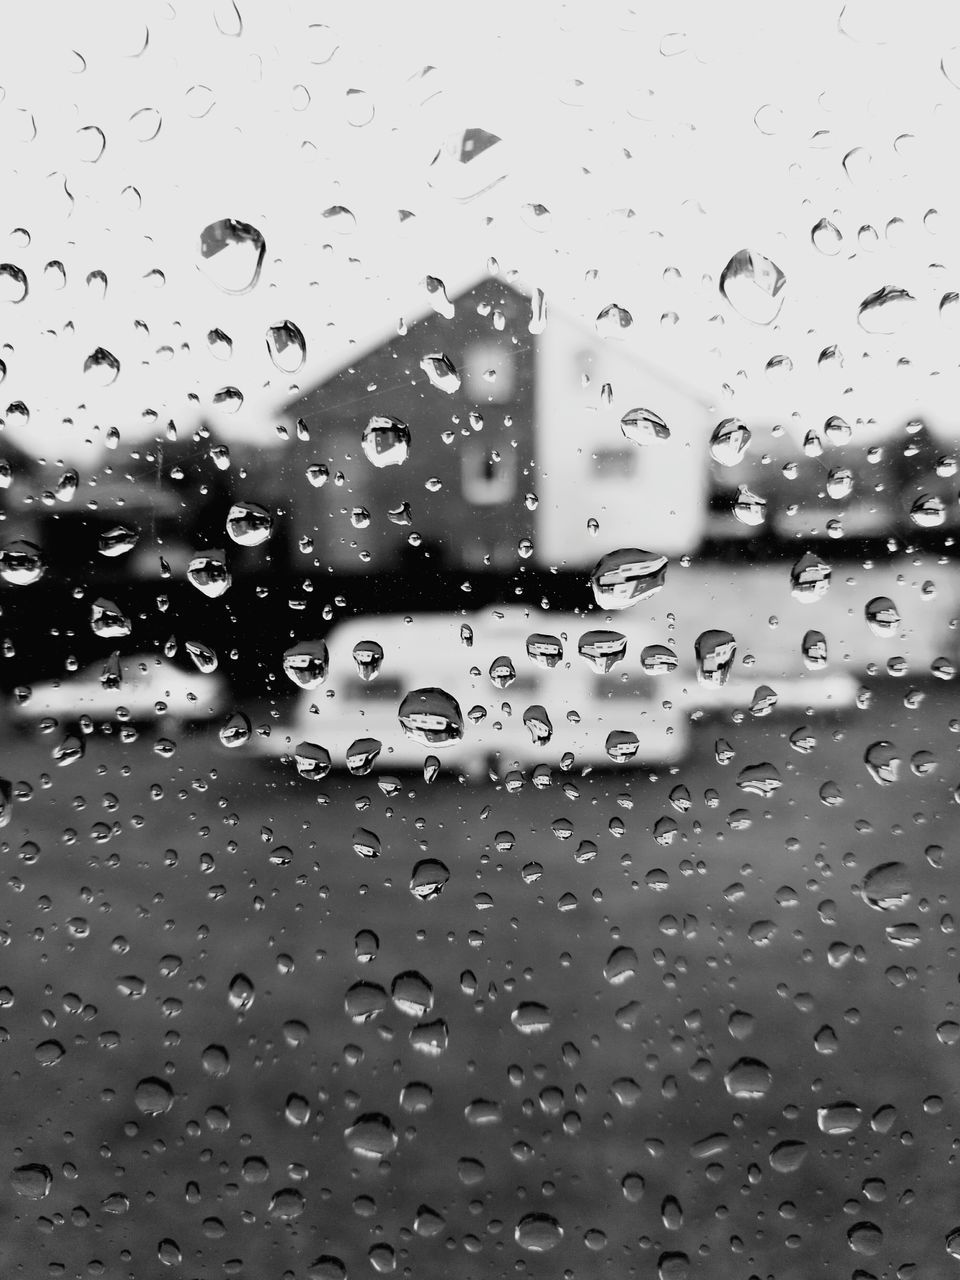 drop, wet, window, rain, raindrop, no people, full frame, backgrounds, water, rainy season, close-up, day, outdoors, nature, sky, building exterior, architecture